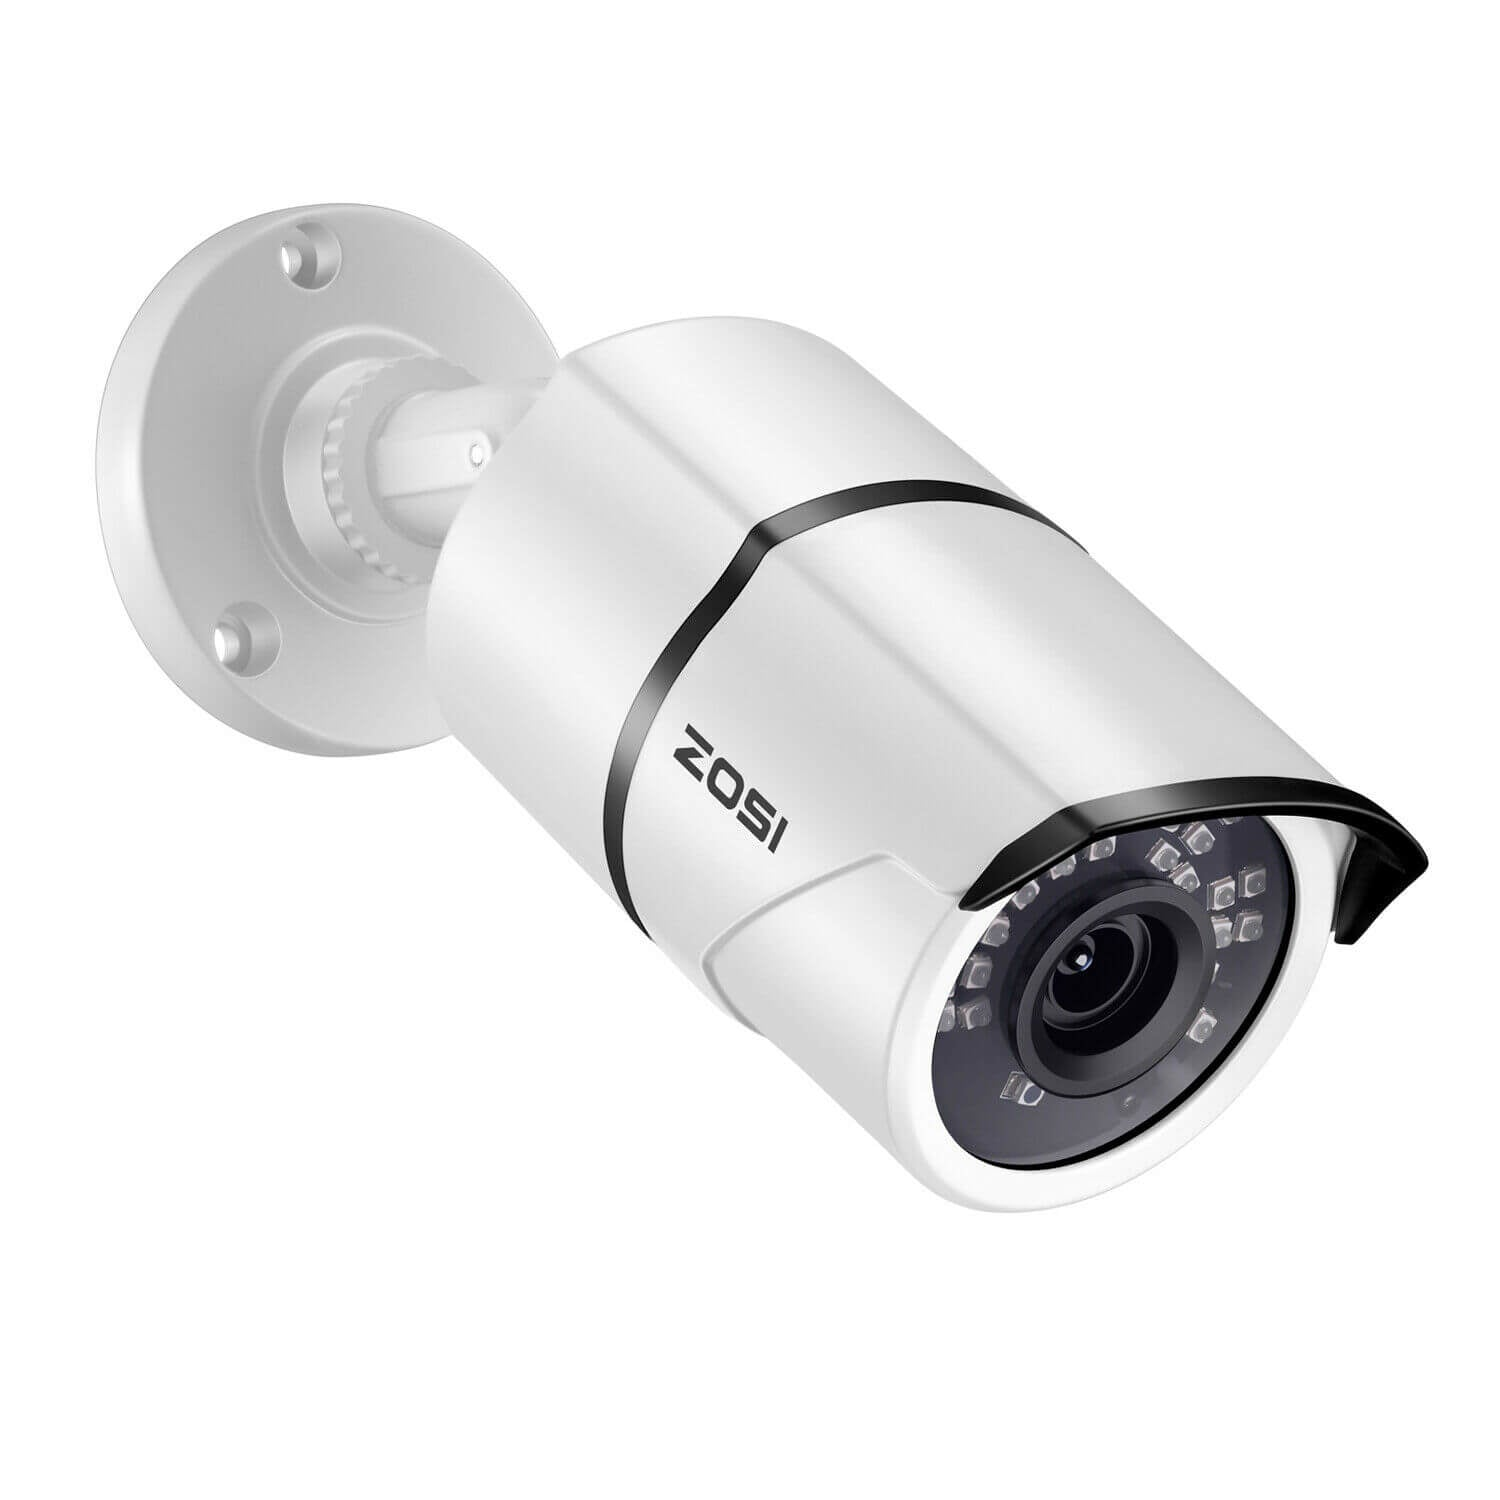 1080P Security Camera, 120ft Infrared Night Vision, Compatible with TVI CVI AHD CVBS DVR